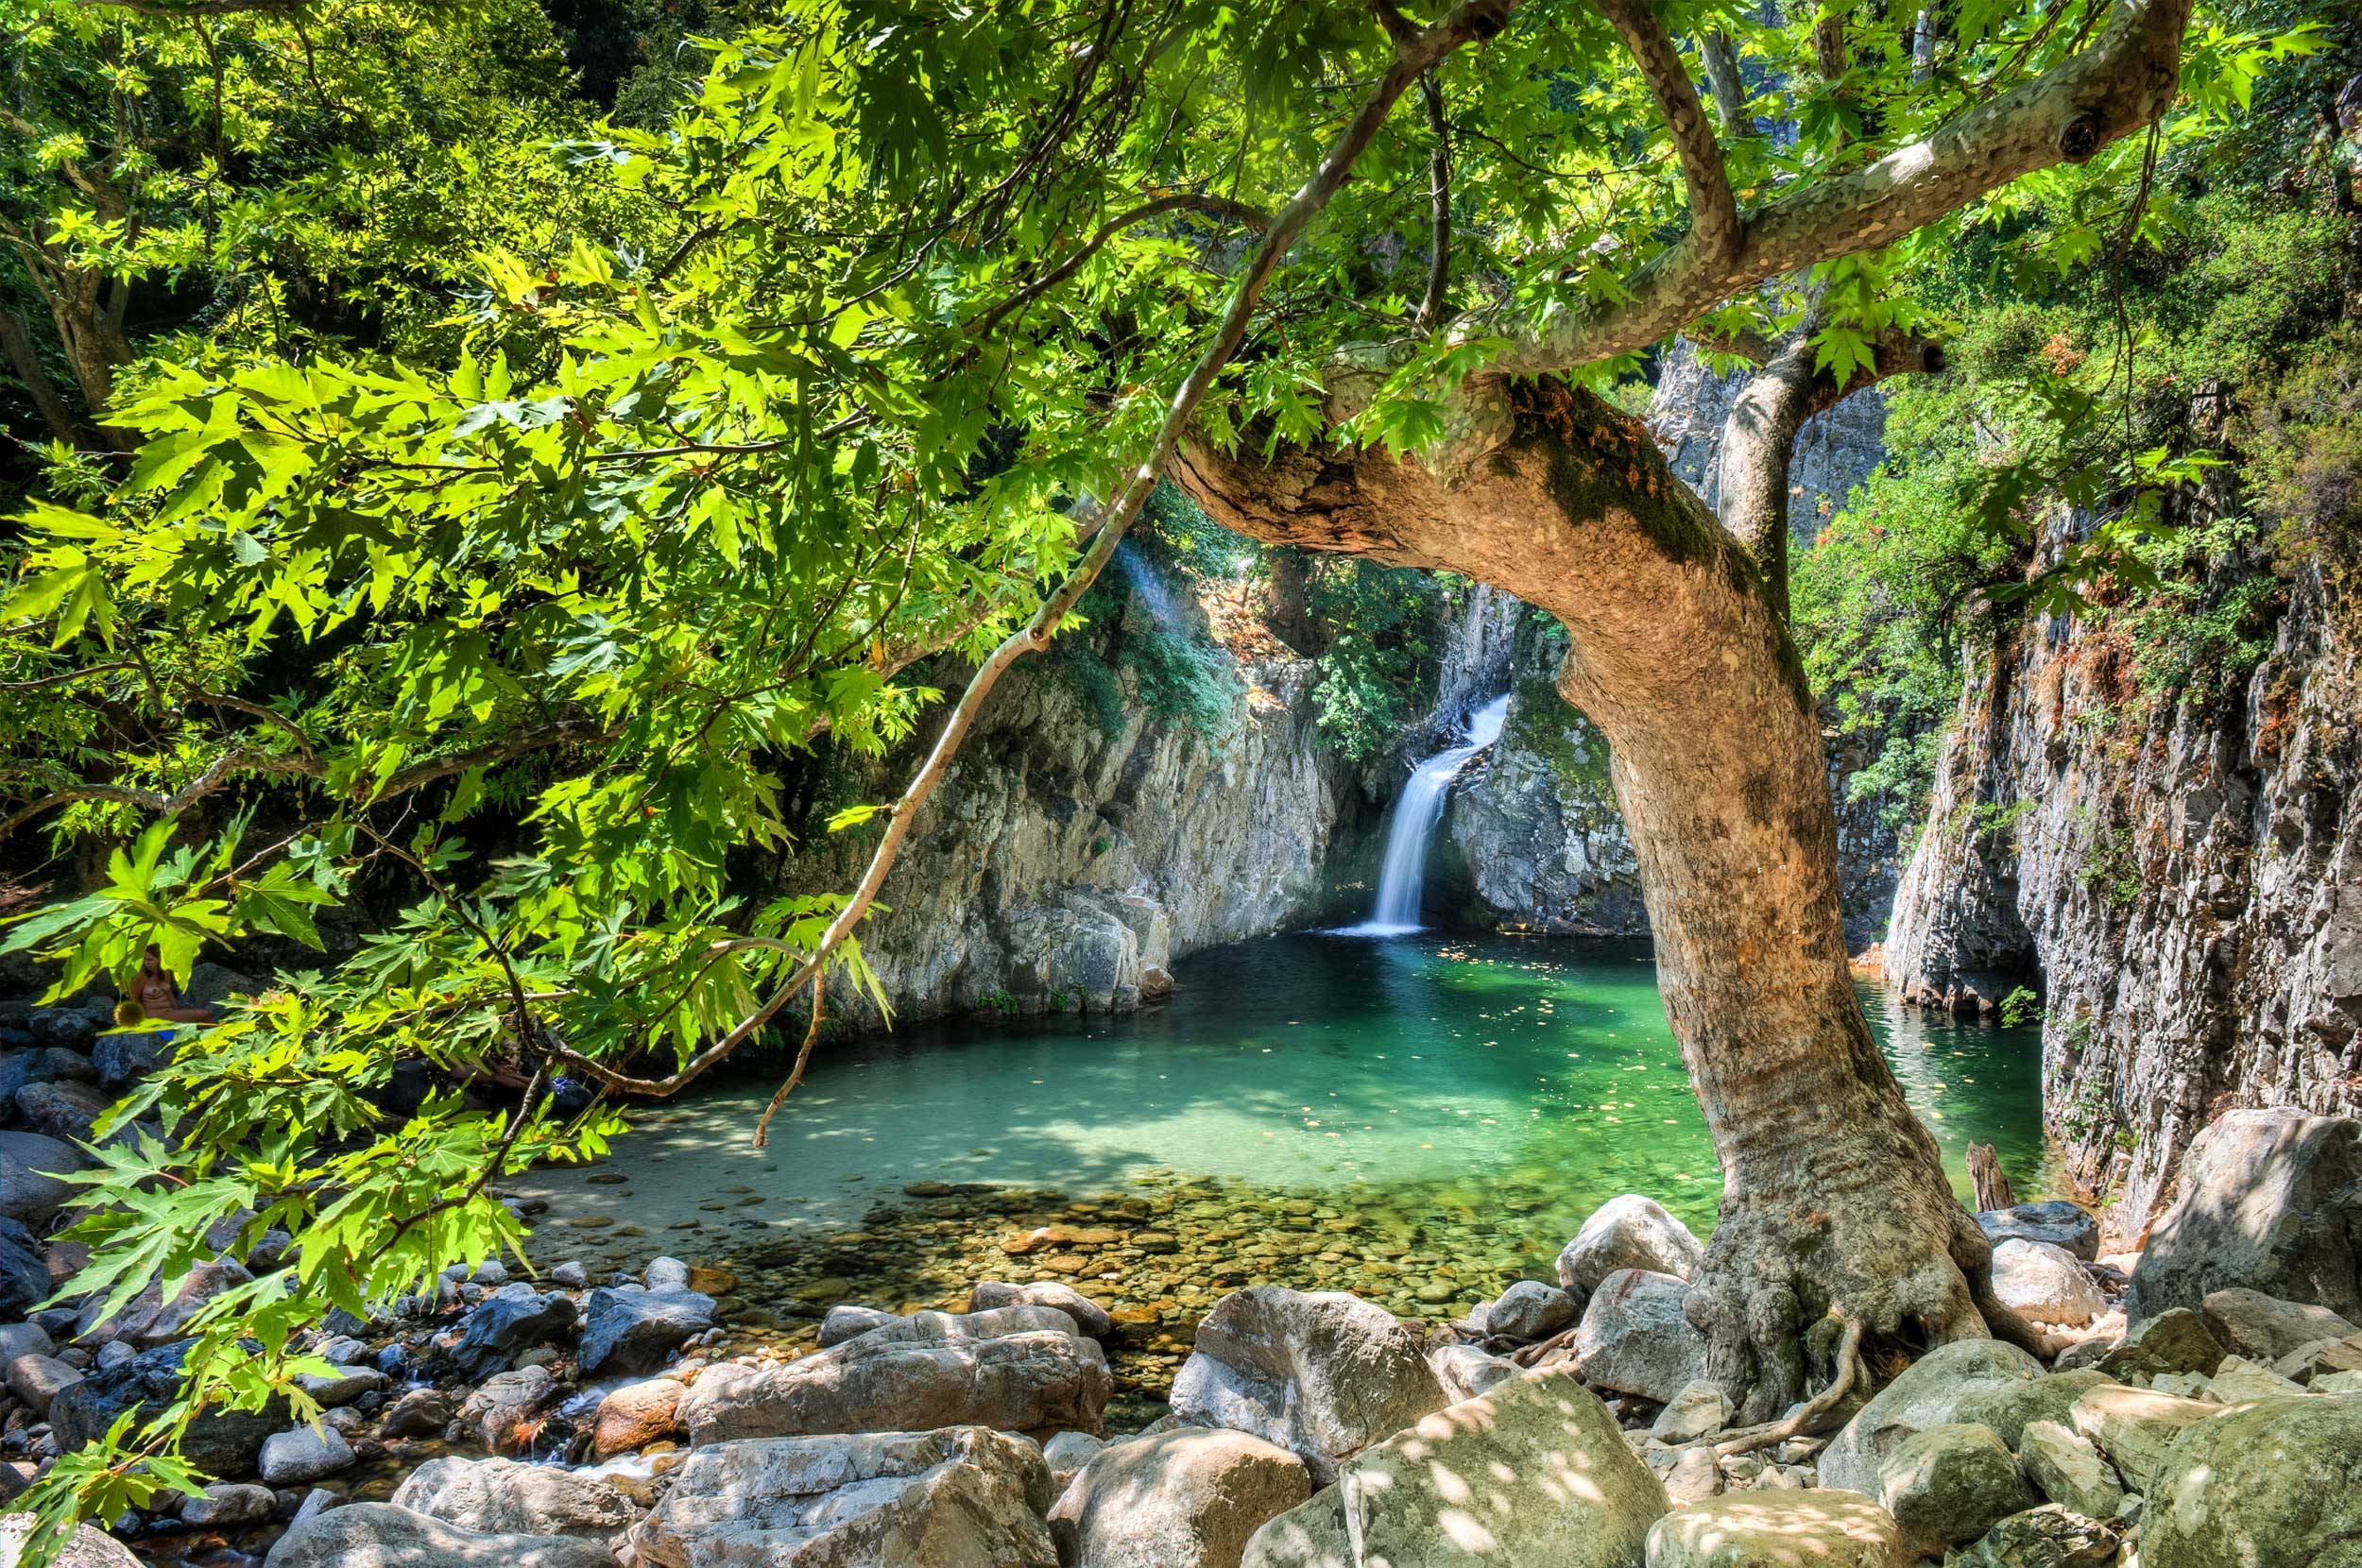 A small waterfall cascading down rocks into a limpid green pool among verdant vegetation, Greece